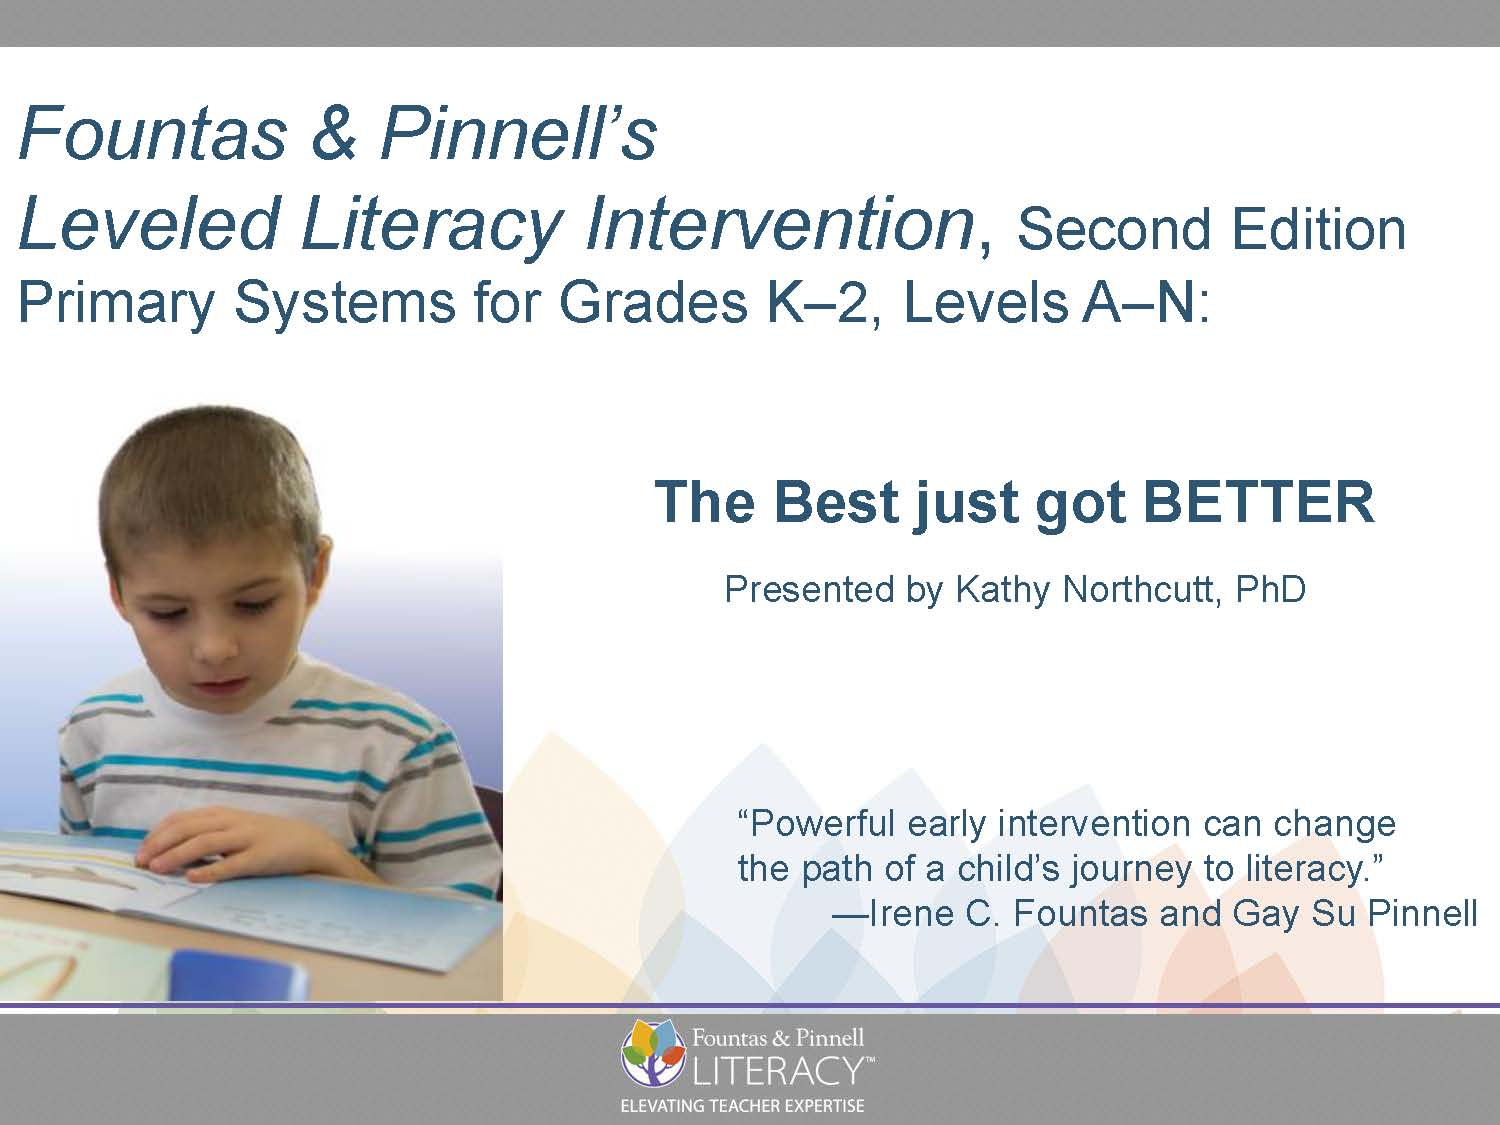 Webinar: Fountas & Pinnell's Leveled Literacy Intervention, 2nd Edition